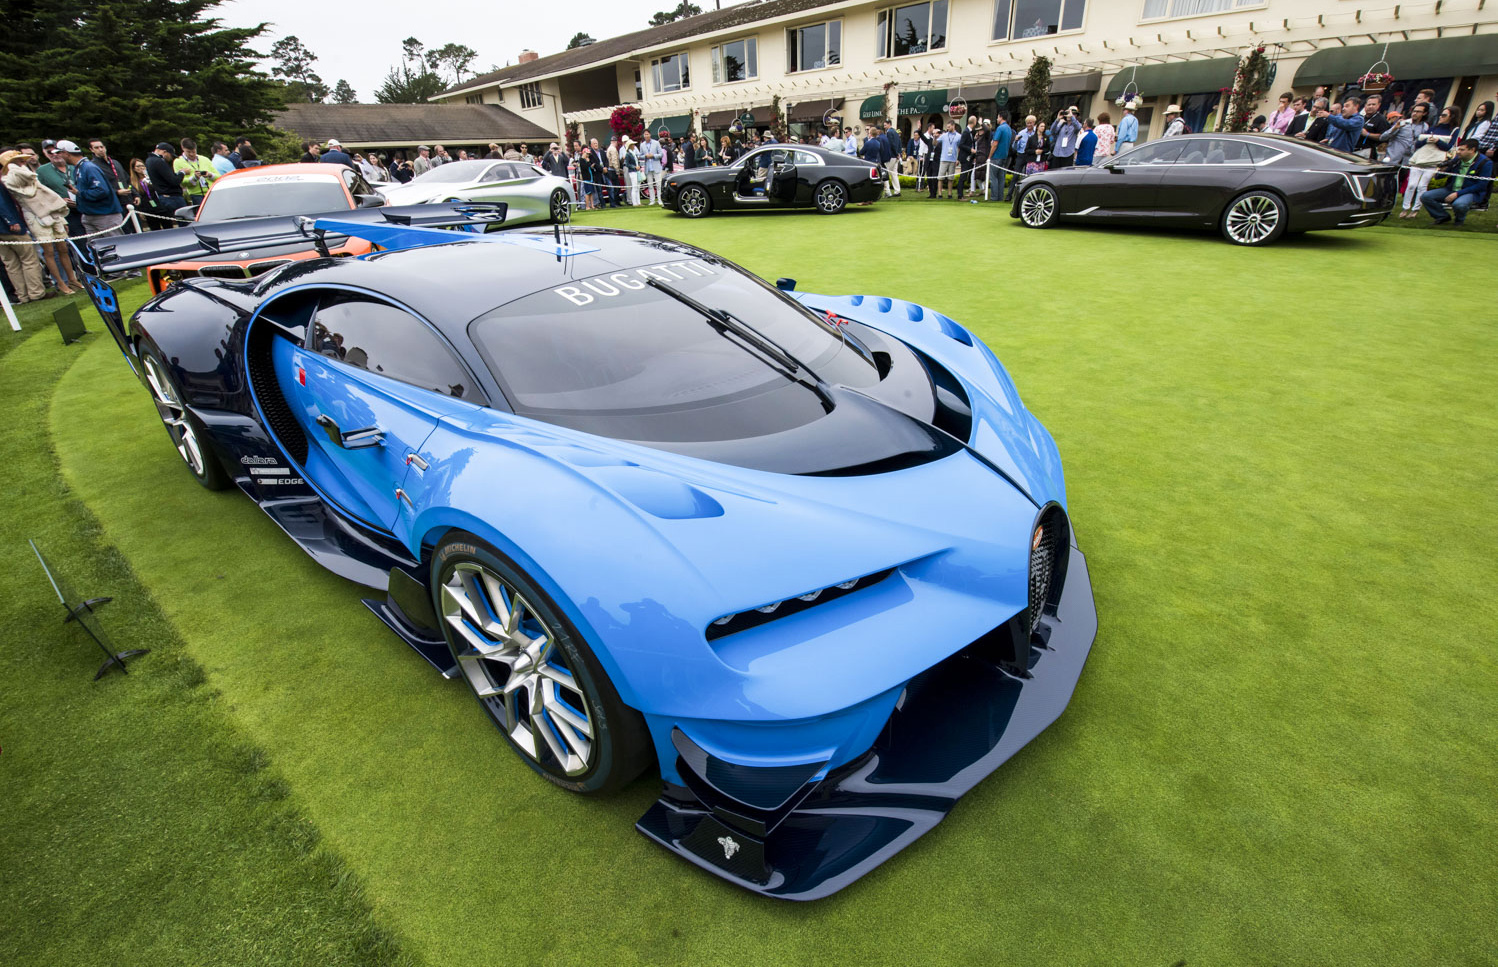 The Most Beautiful Cars From The Pebble Beach Concours DElegance - Pebble beach car show ticket prices